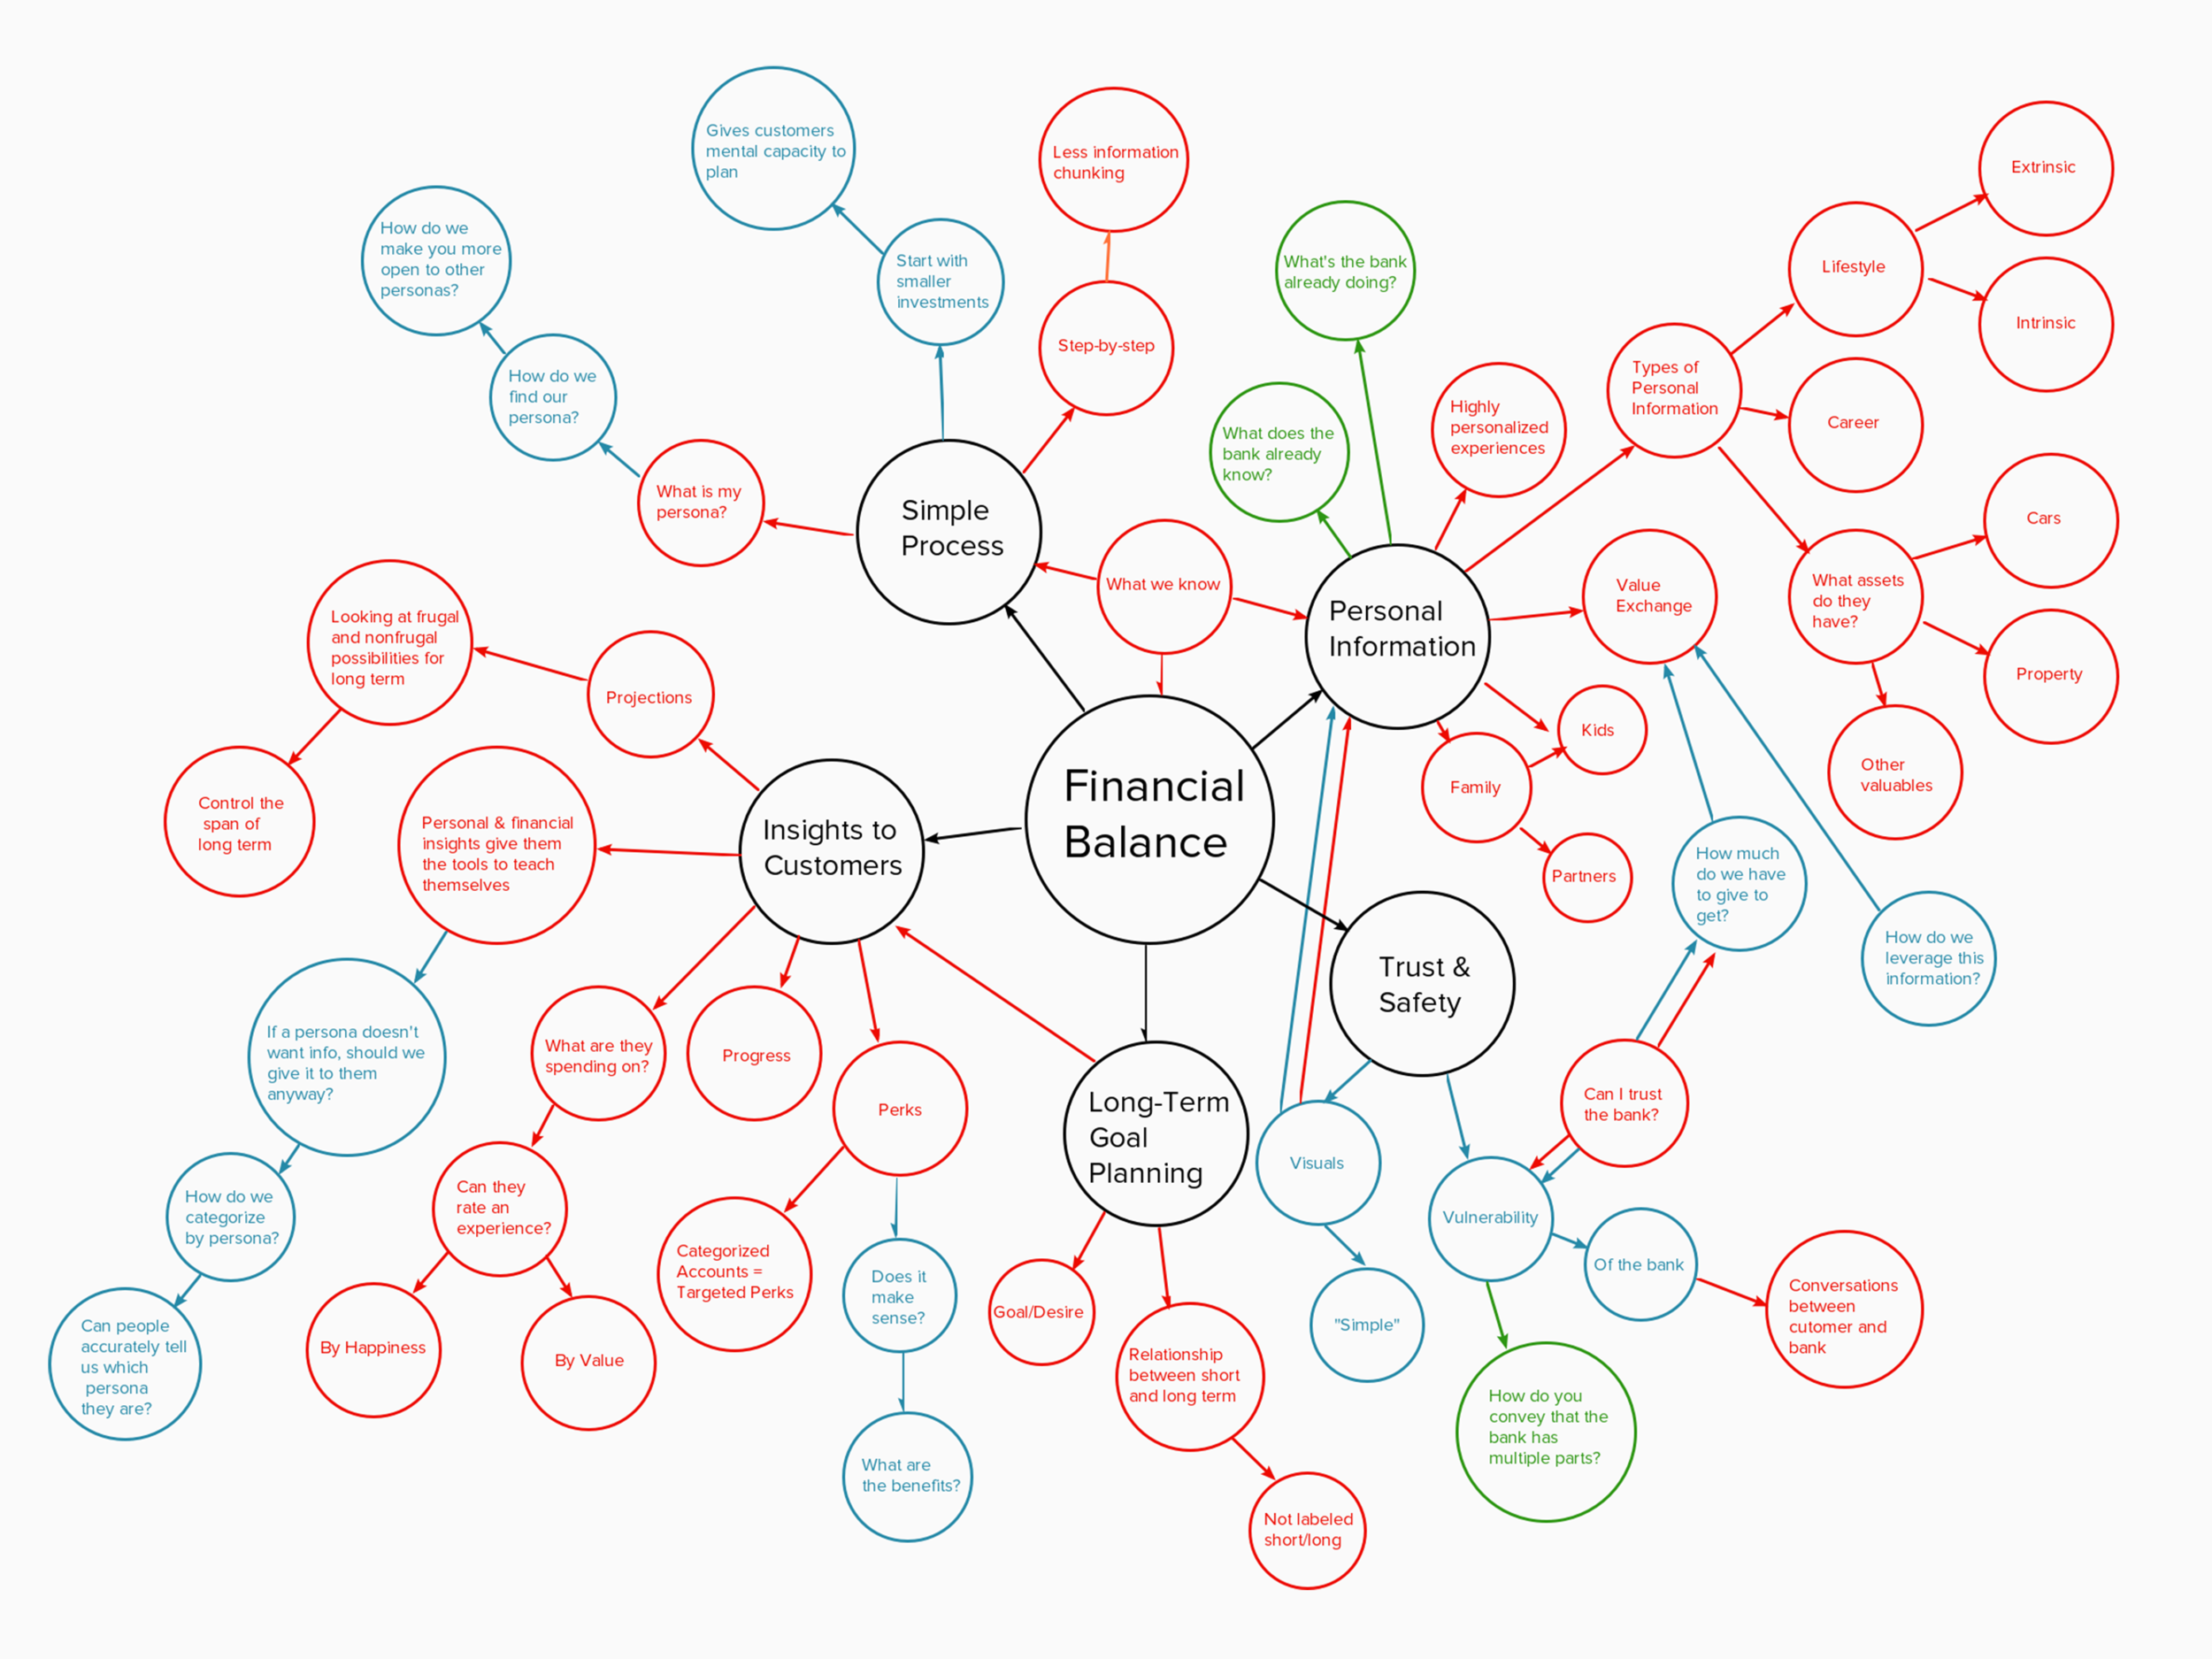 Concept map with insights and pain points of mass affluent customers